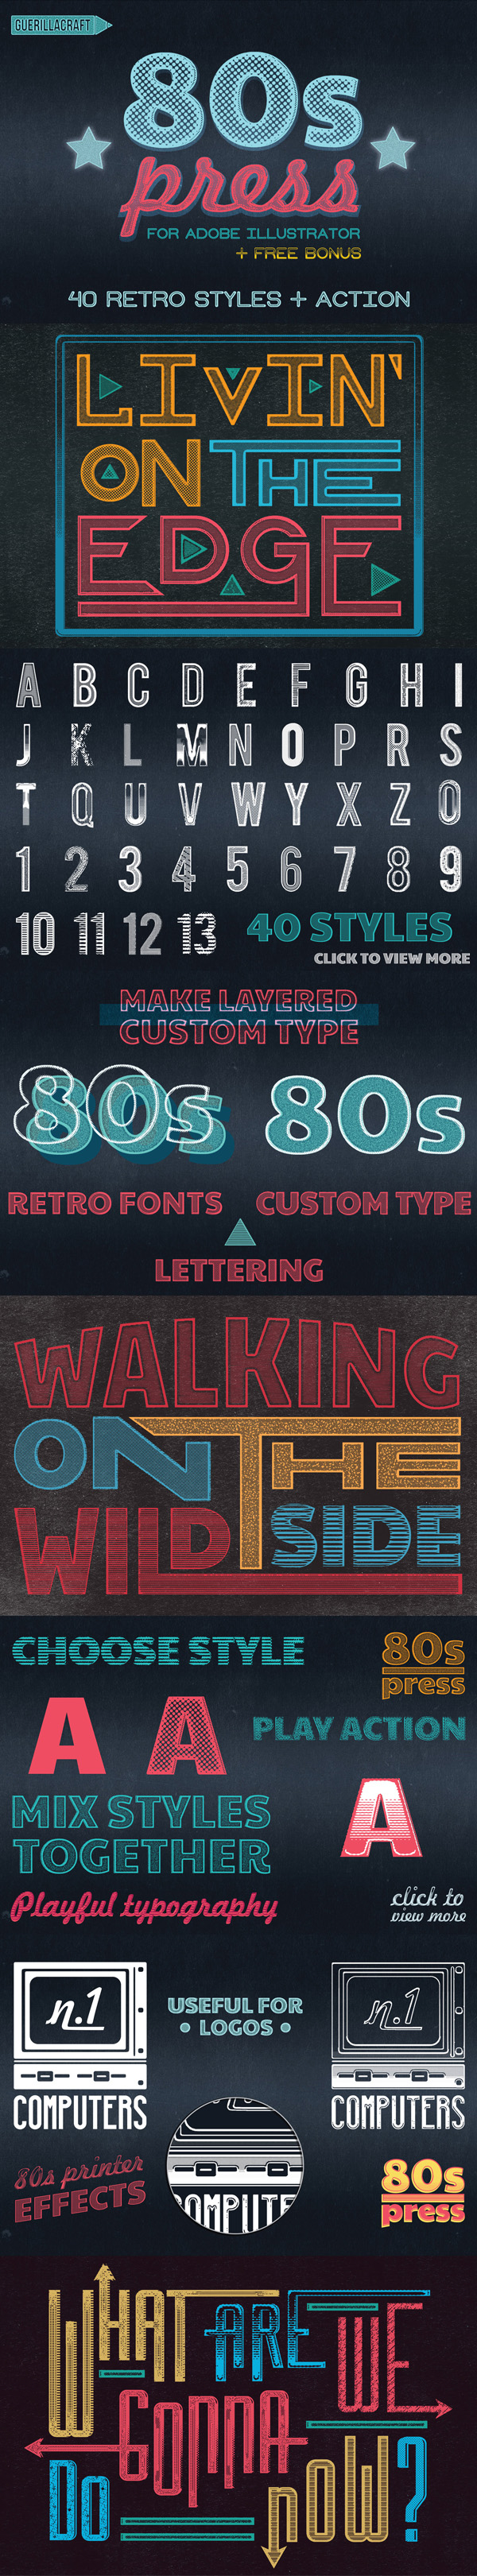 Freebies for 2019: Free 40 Retro Style for Adobe Illustrator